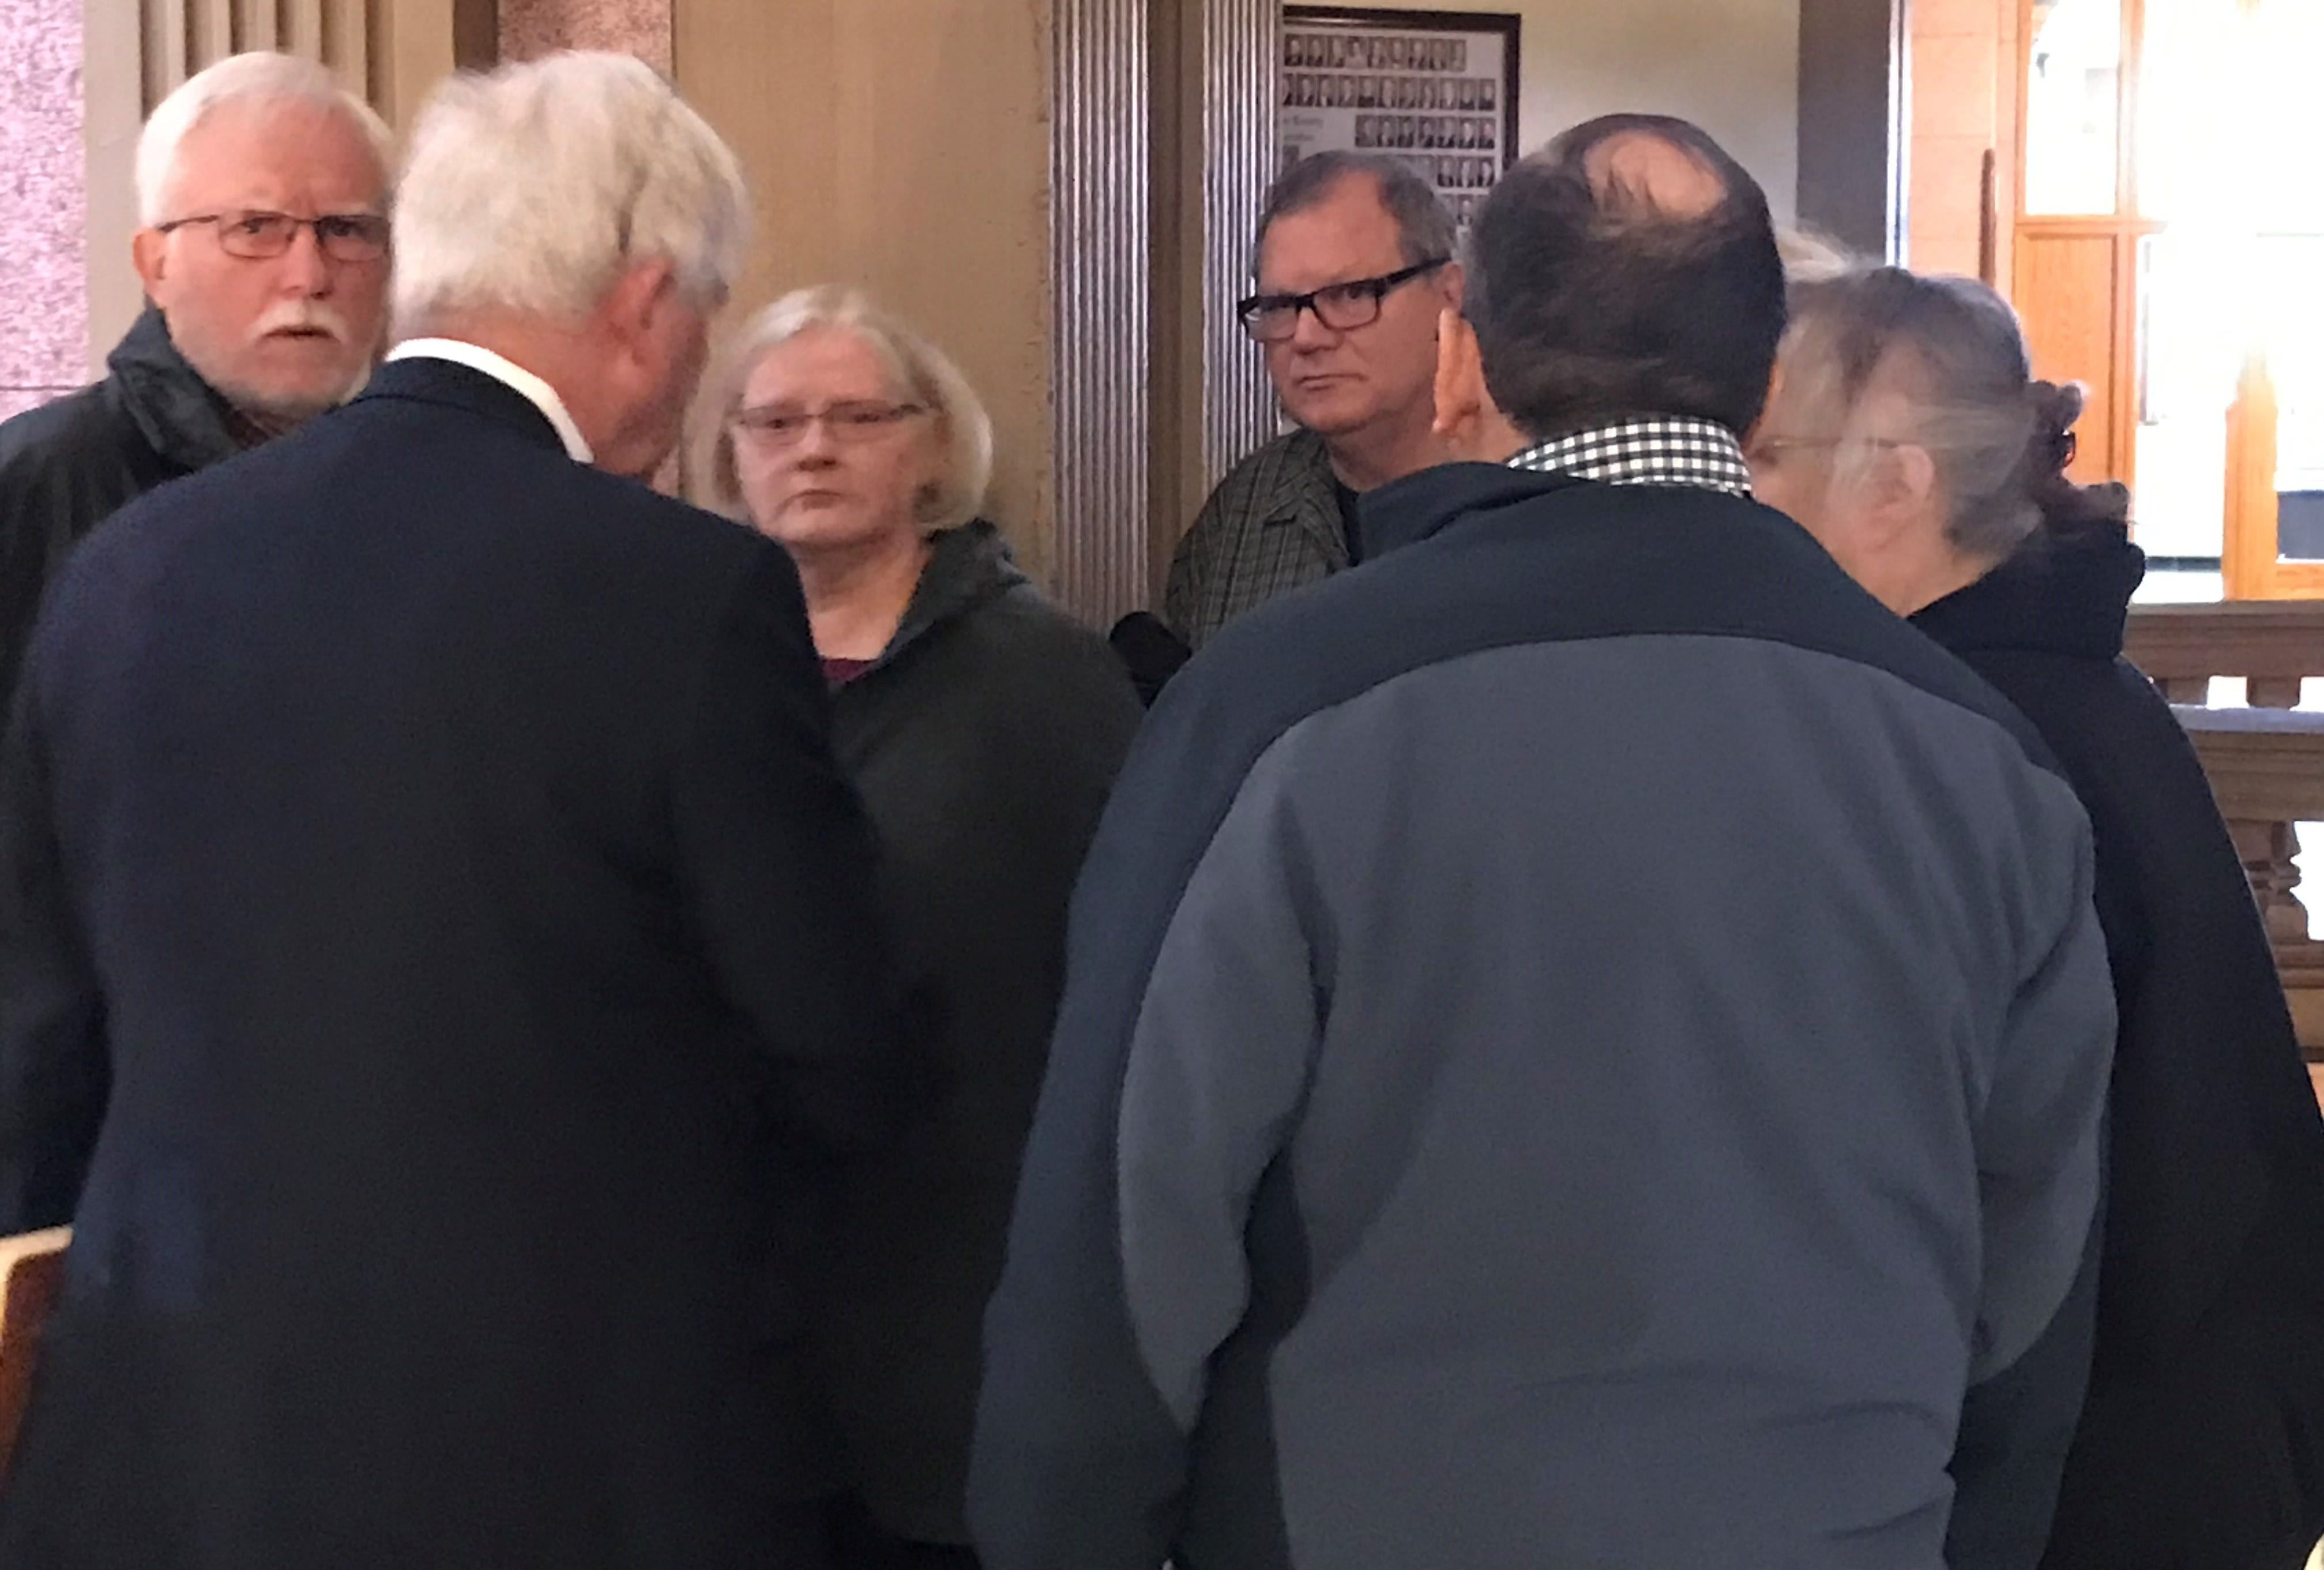 Laura Hettinger, center, meets with her supporters and her attorney after she was sentenced for stealing $471,222 from her employer.